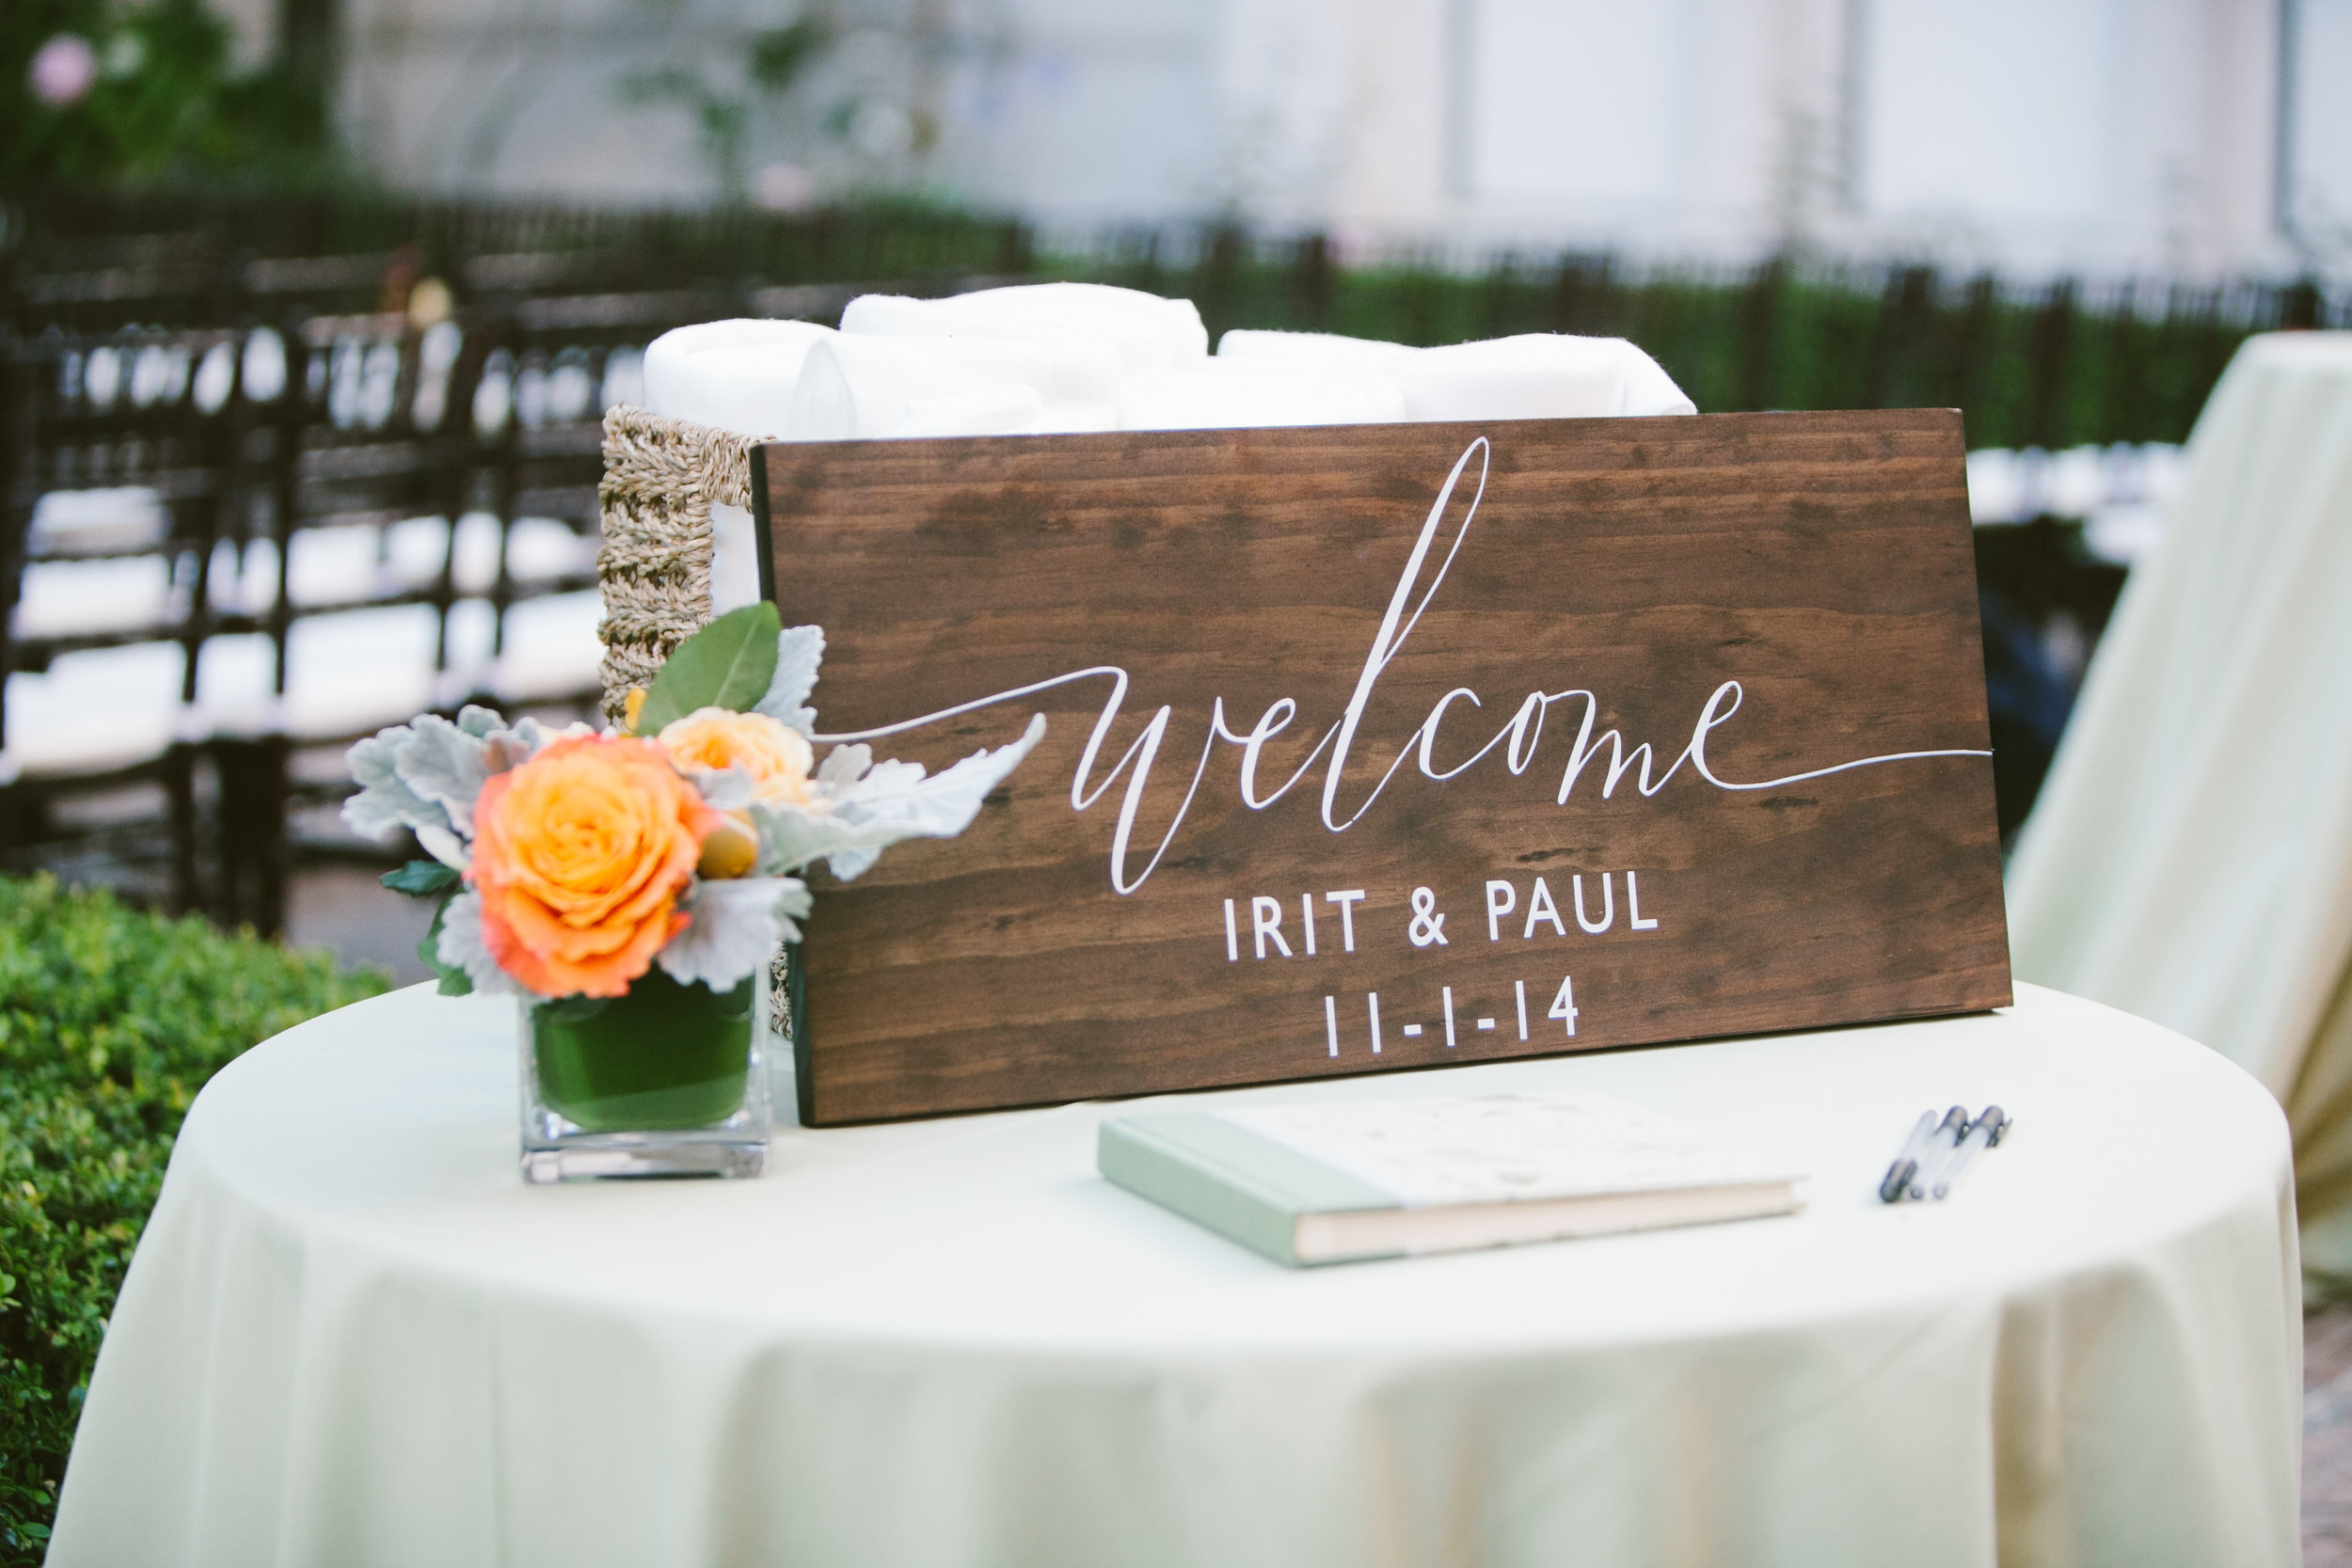 12x24 wedding welcome sign.jpg